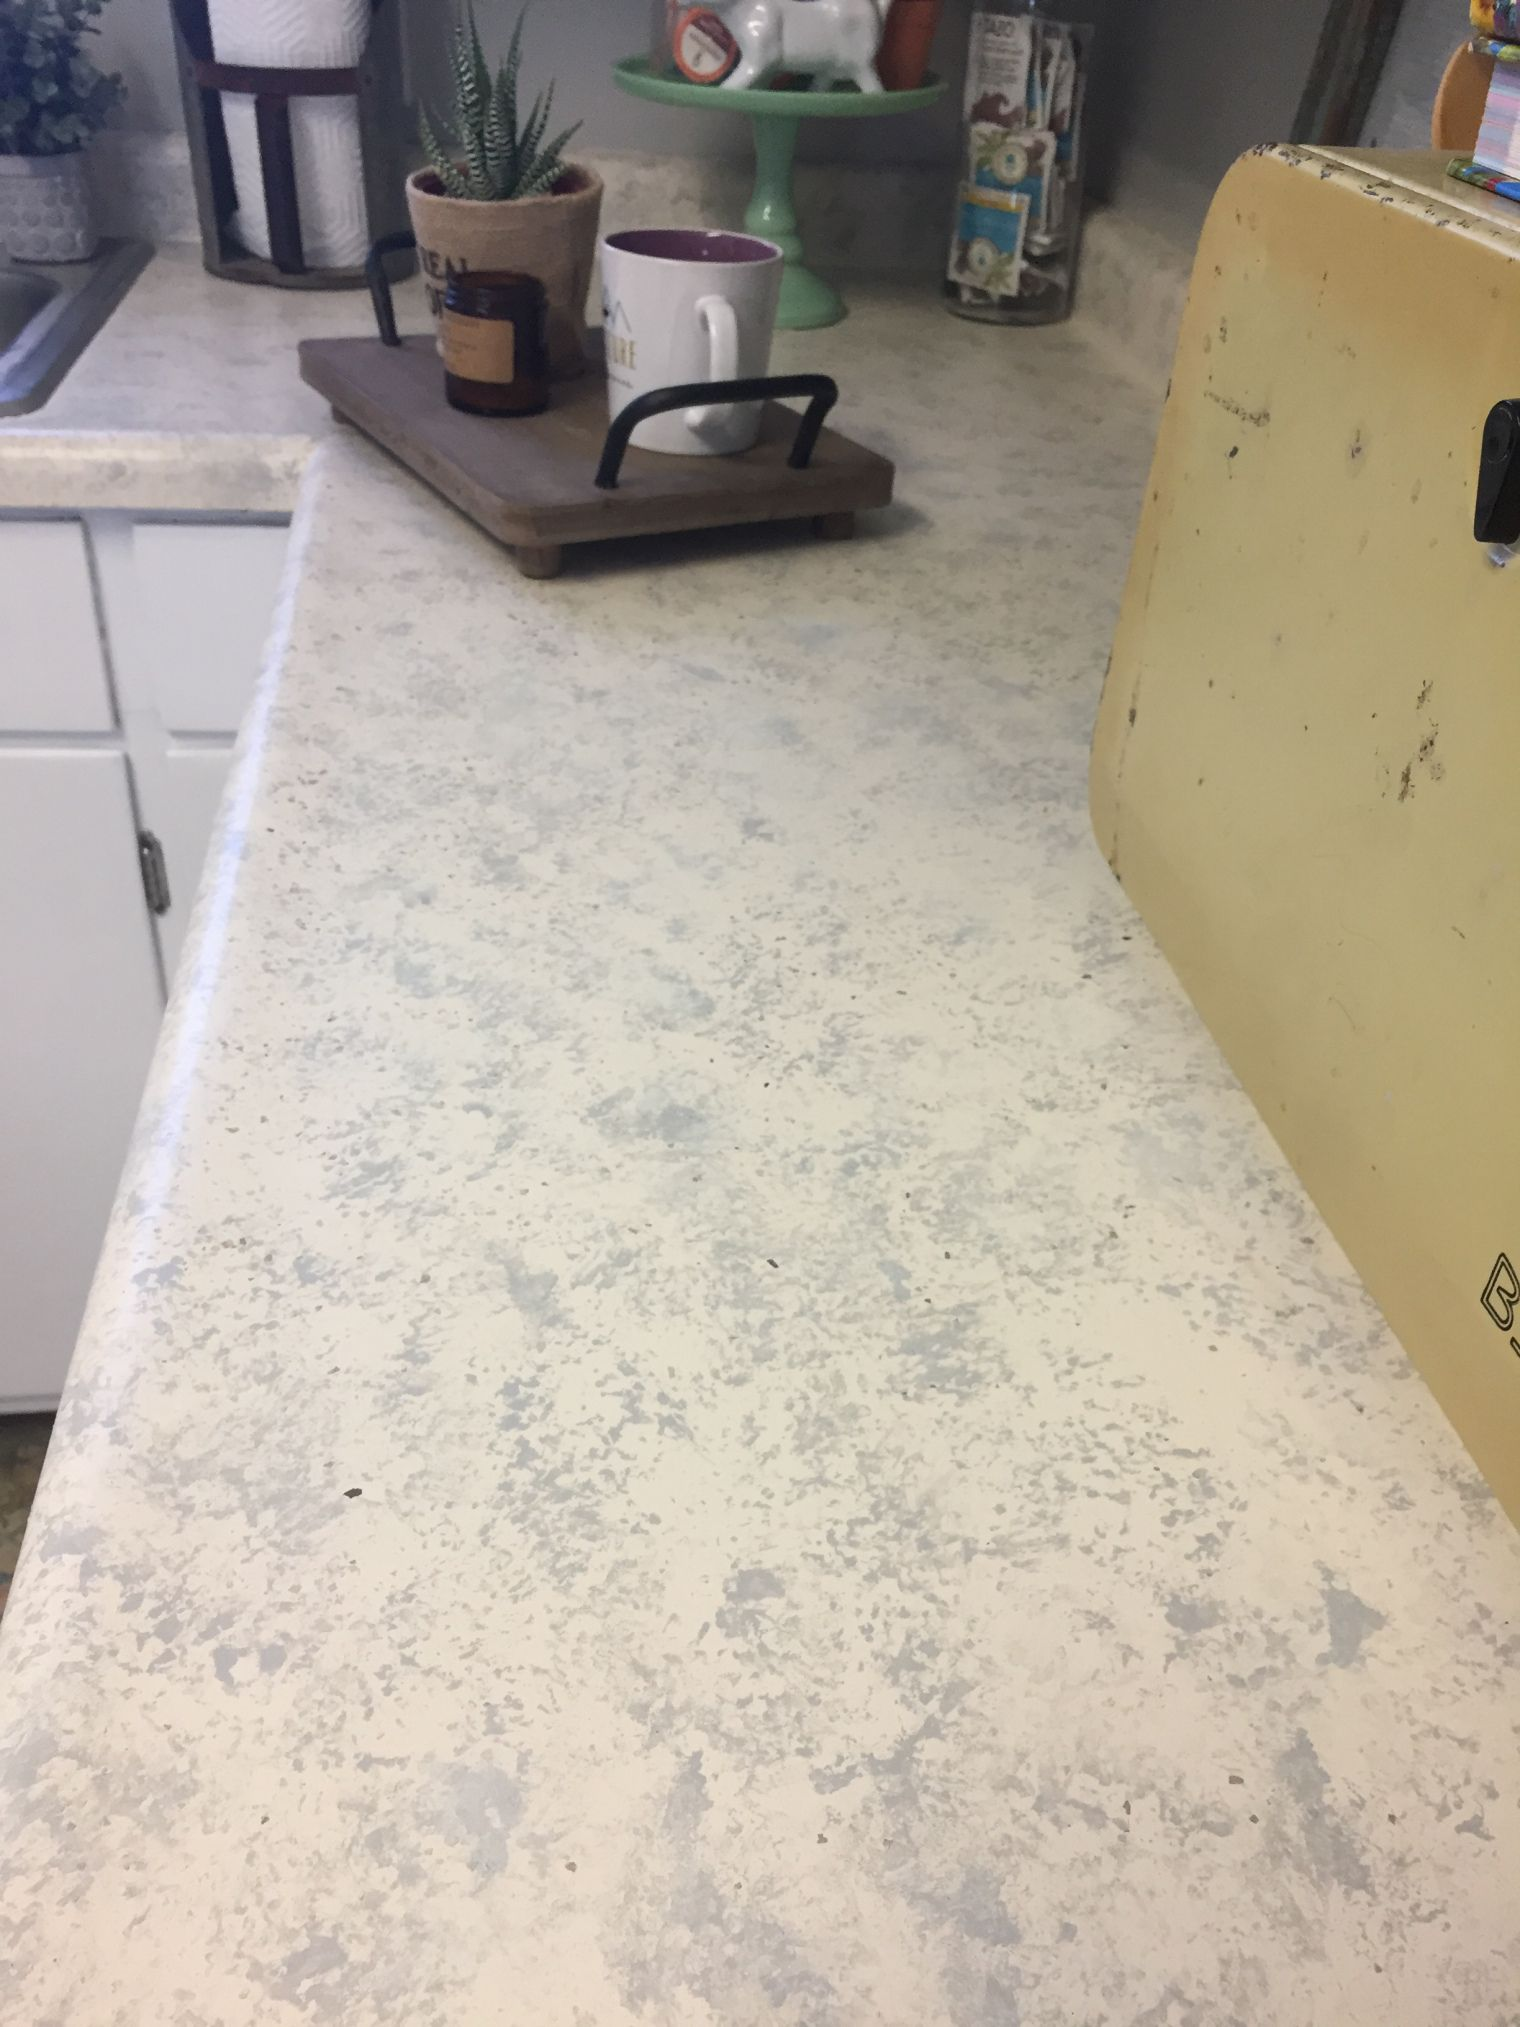 Dual Color Granite Like Finish With Beyond Paint No Stripping Sanding Or Priming All In One Paint Beyond Paint